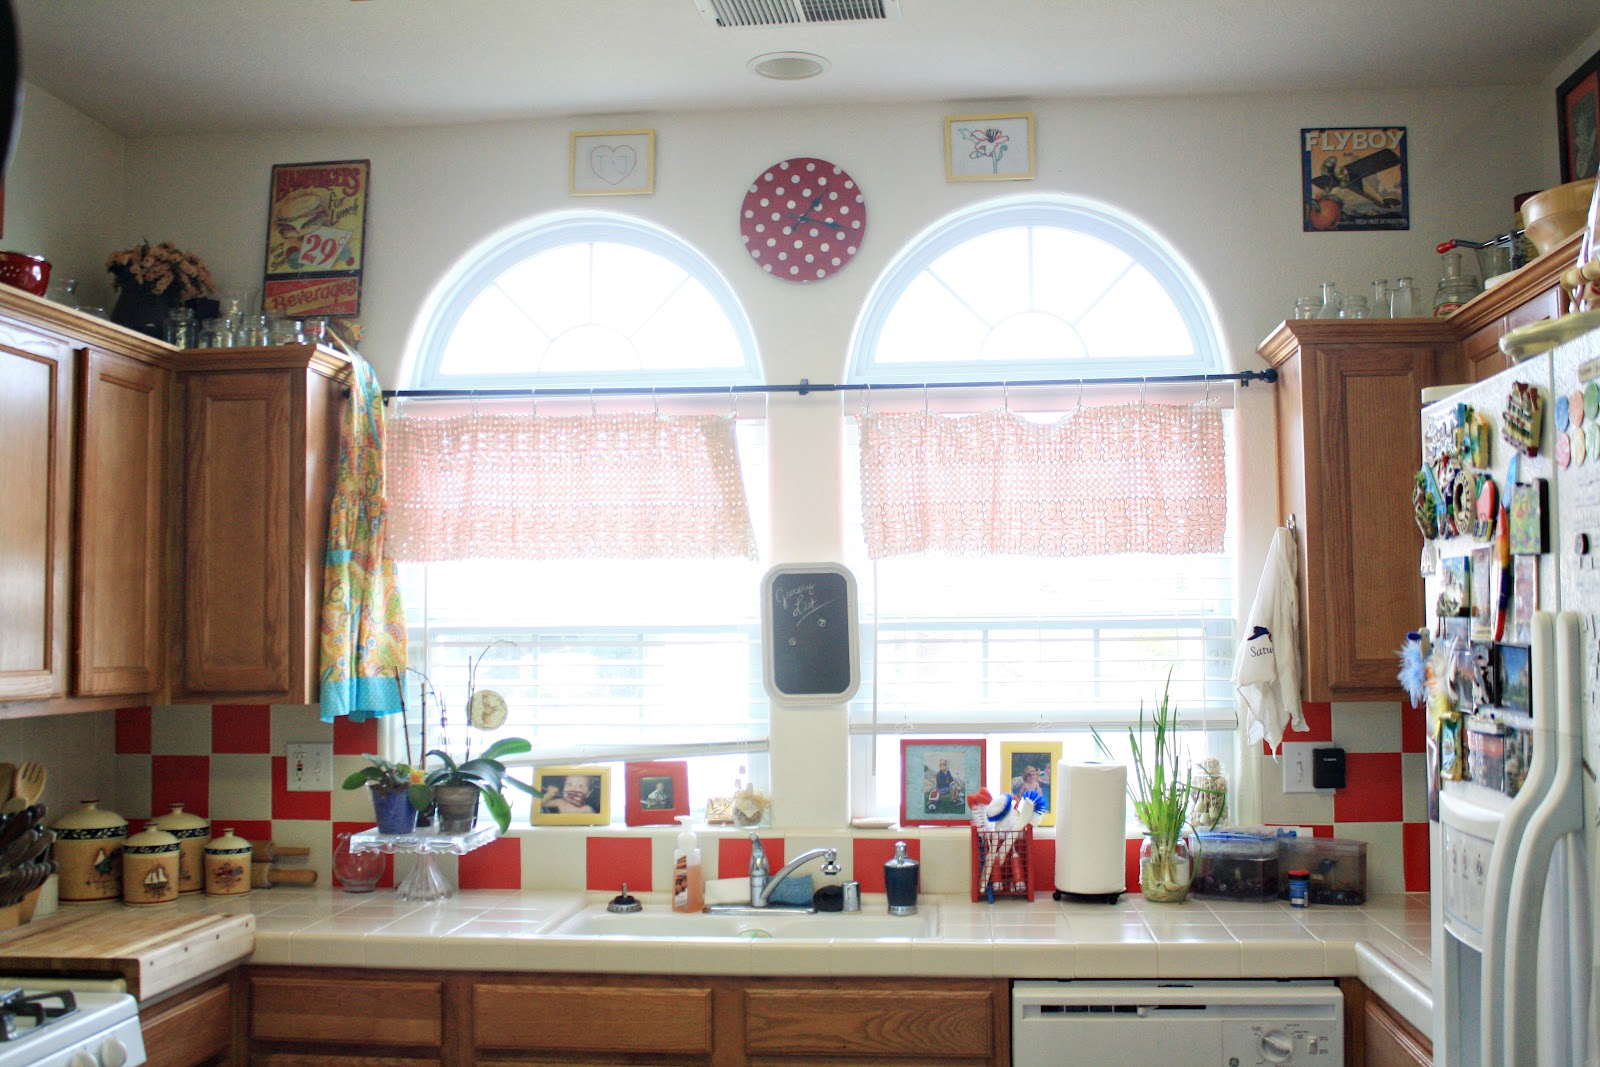 Notes from the Plumb Tree: An Ode to Contact Paper and a Retro Kitchen